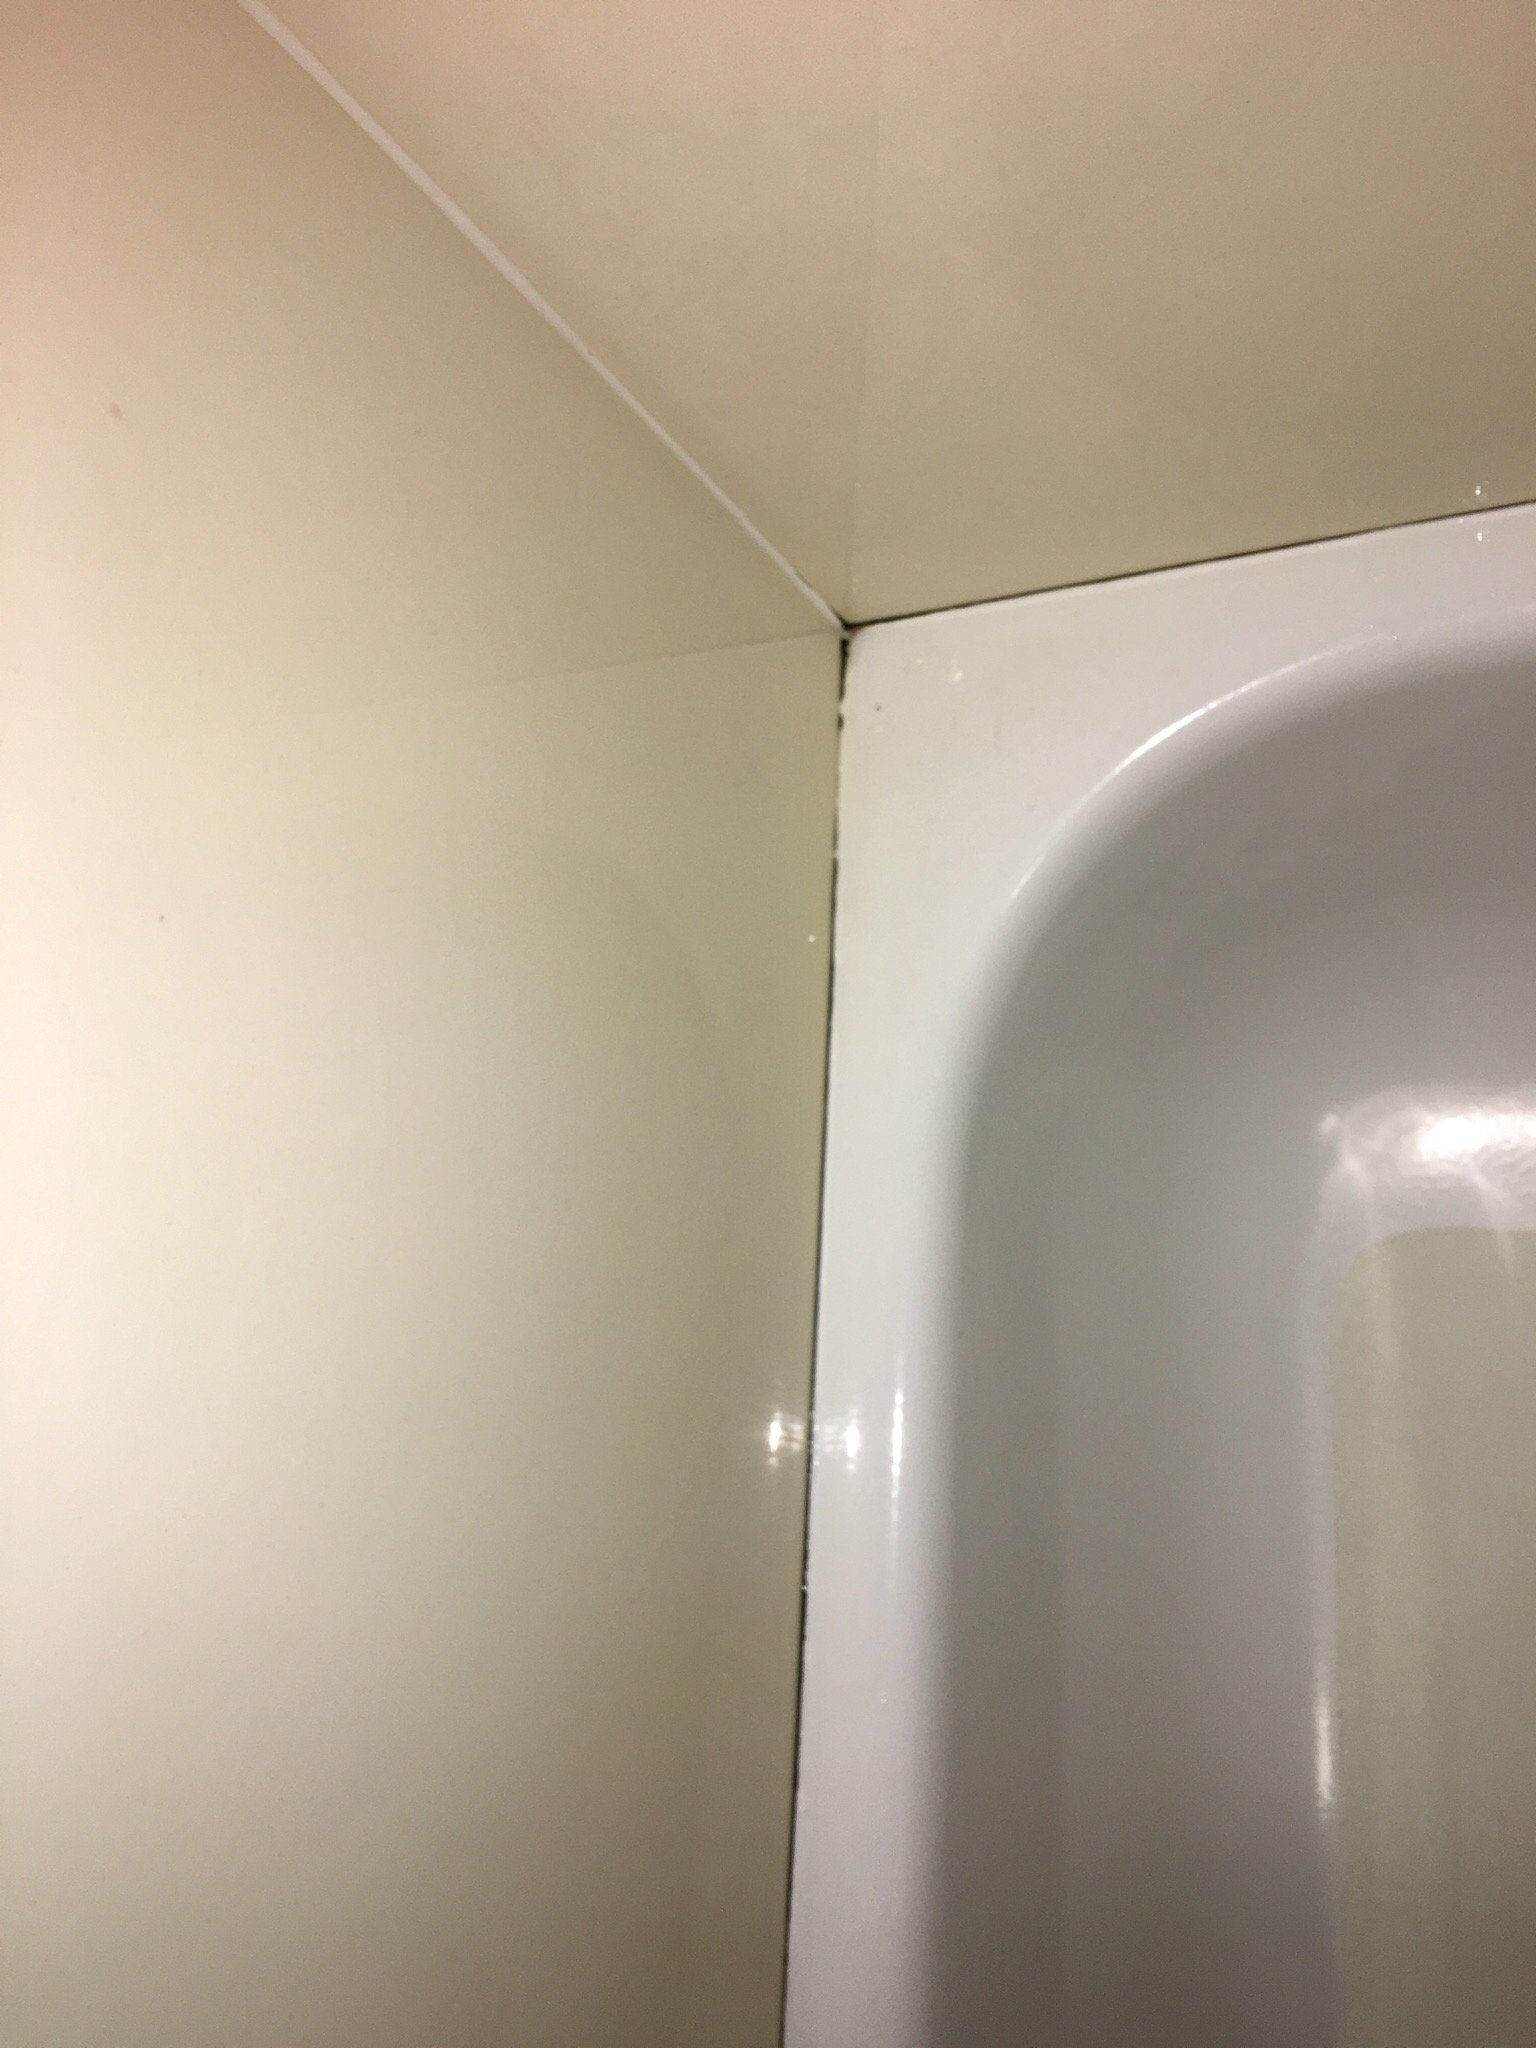 Missing or poorly caulked shower